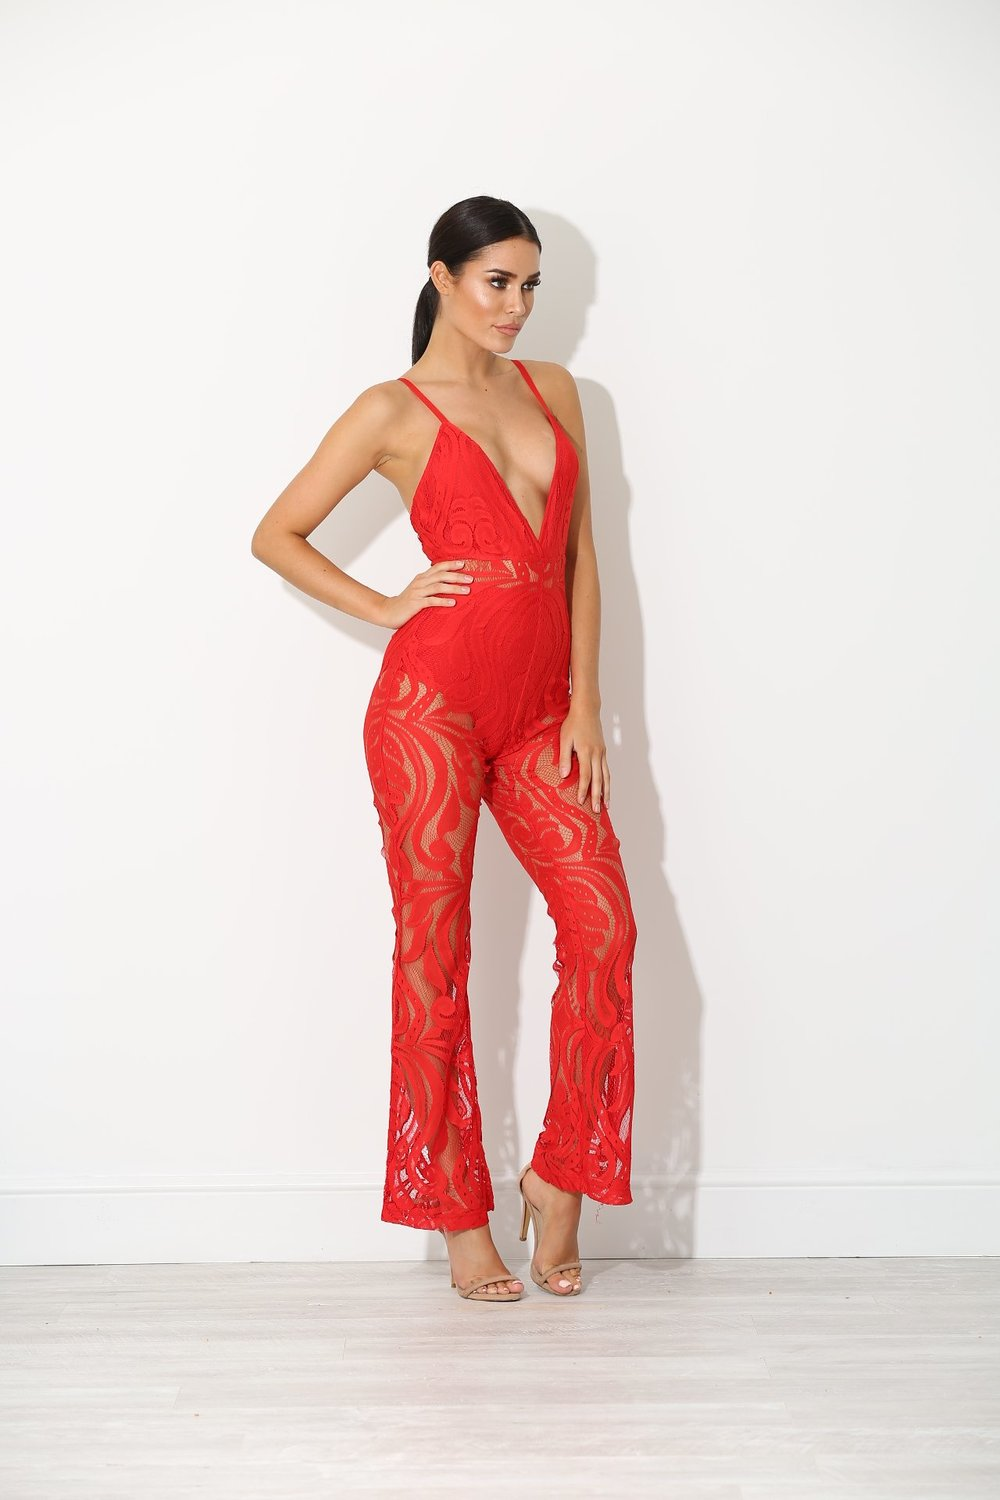 Tami_Jumpsuit_Red_2_f7426d0e-bb04-42cc-a550-64e40a6f0e42_2048x.jpeg